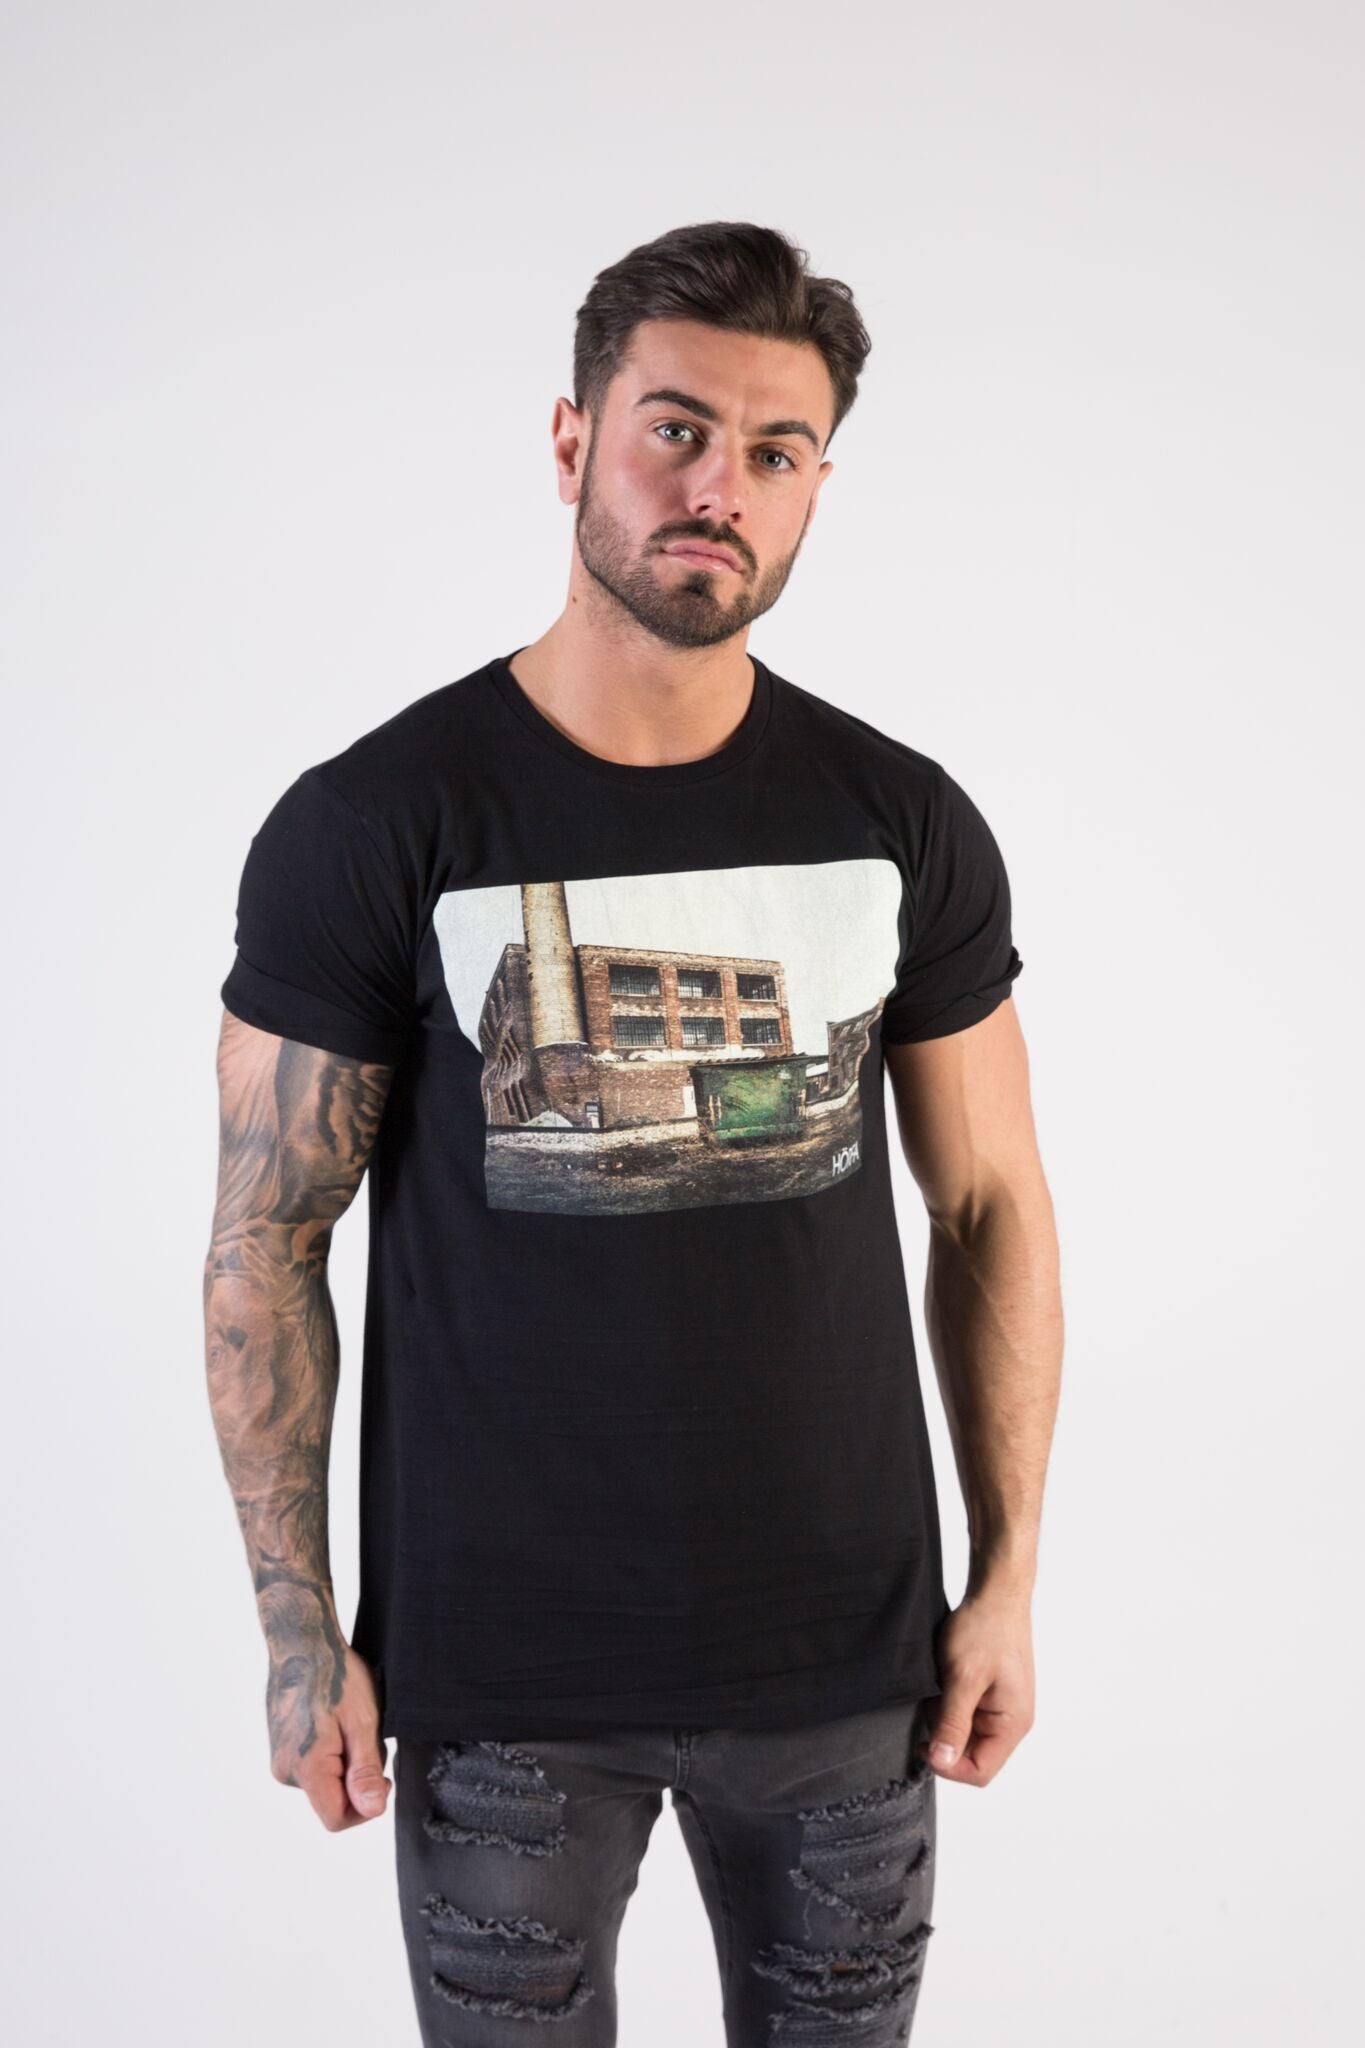 INDUSTRIAL Muscle Fit T-Shirt - HÖRFA is a men's global fashion brand that provides products such as Fashionable Watches, Wallets, Sunglasses, Belts, Beard and Male Grooming Products